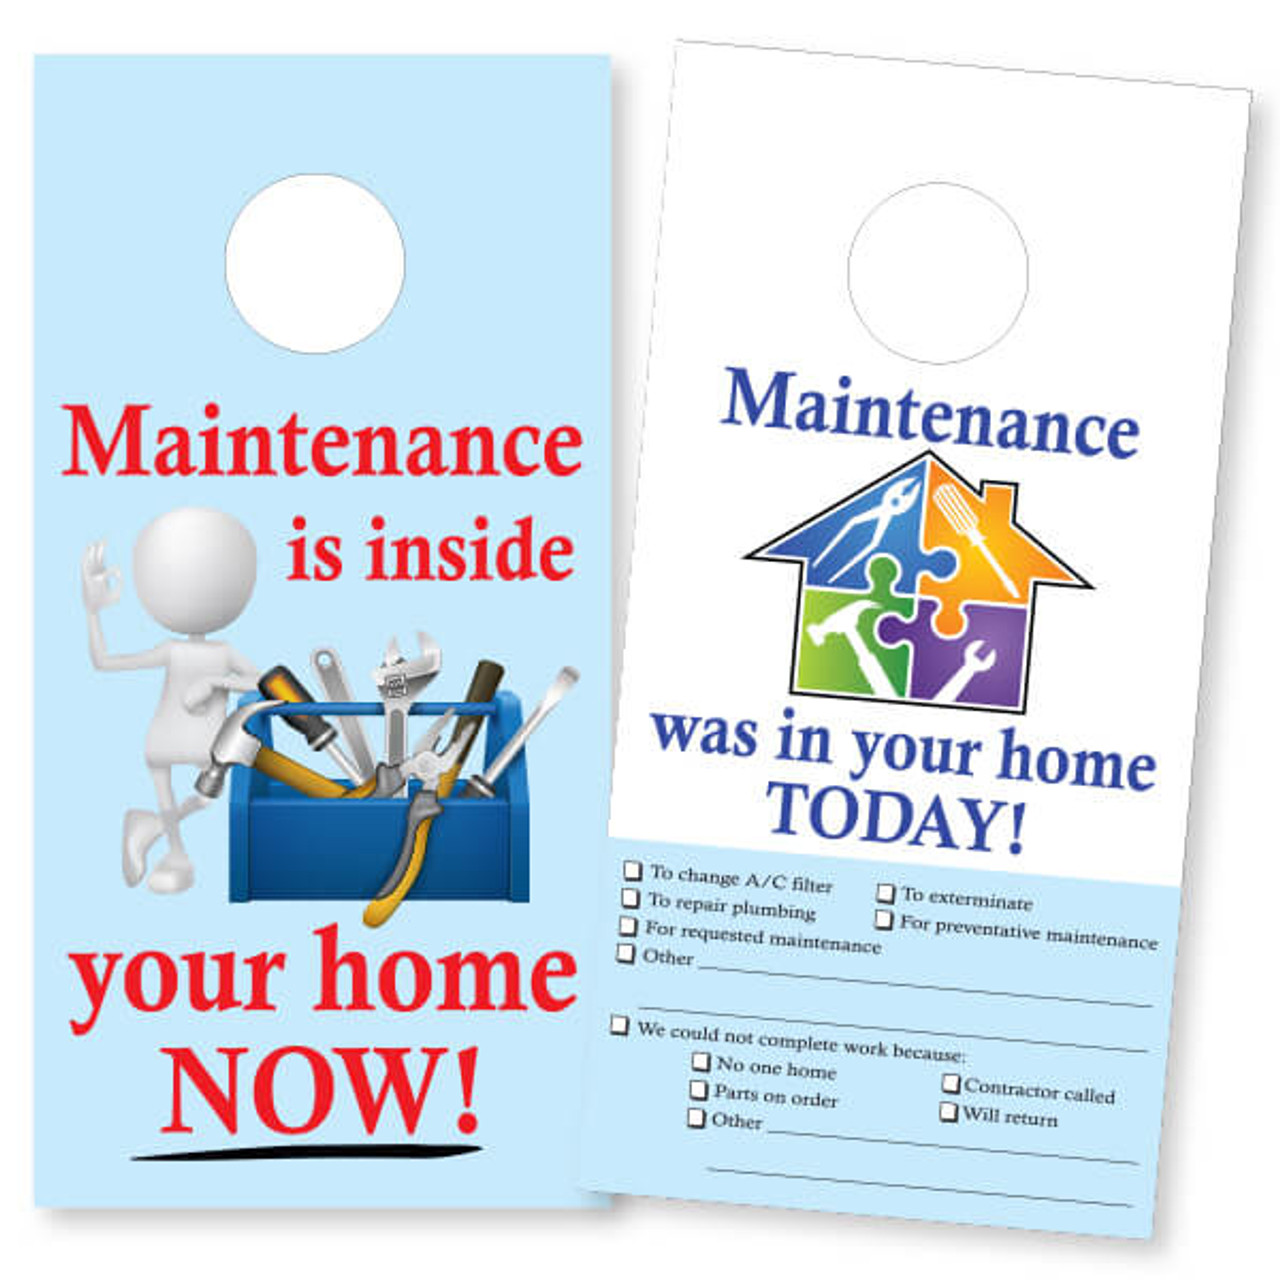 Maintenance Door Hanger w/checklist